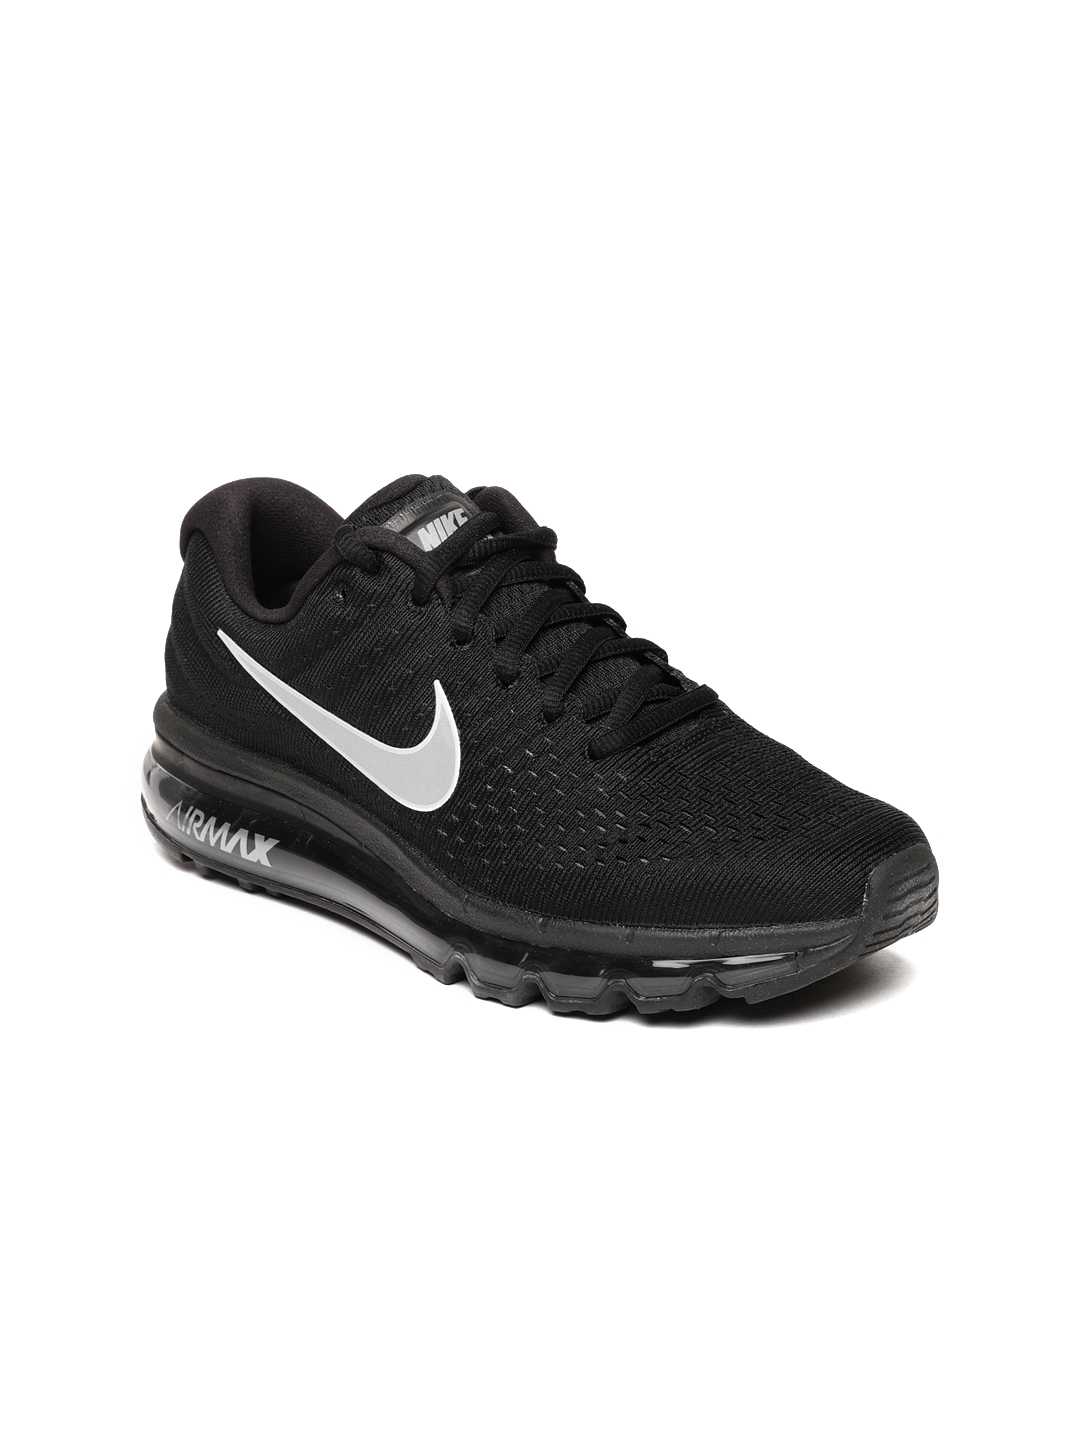 half off 13a75 4bfc4 Buy Nike Women Black Air Max 2017 Running Shoes - Sports Shoes for ...